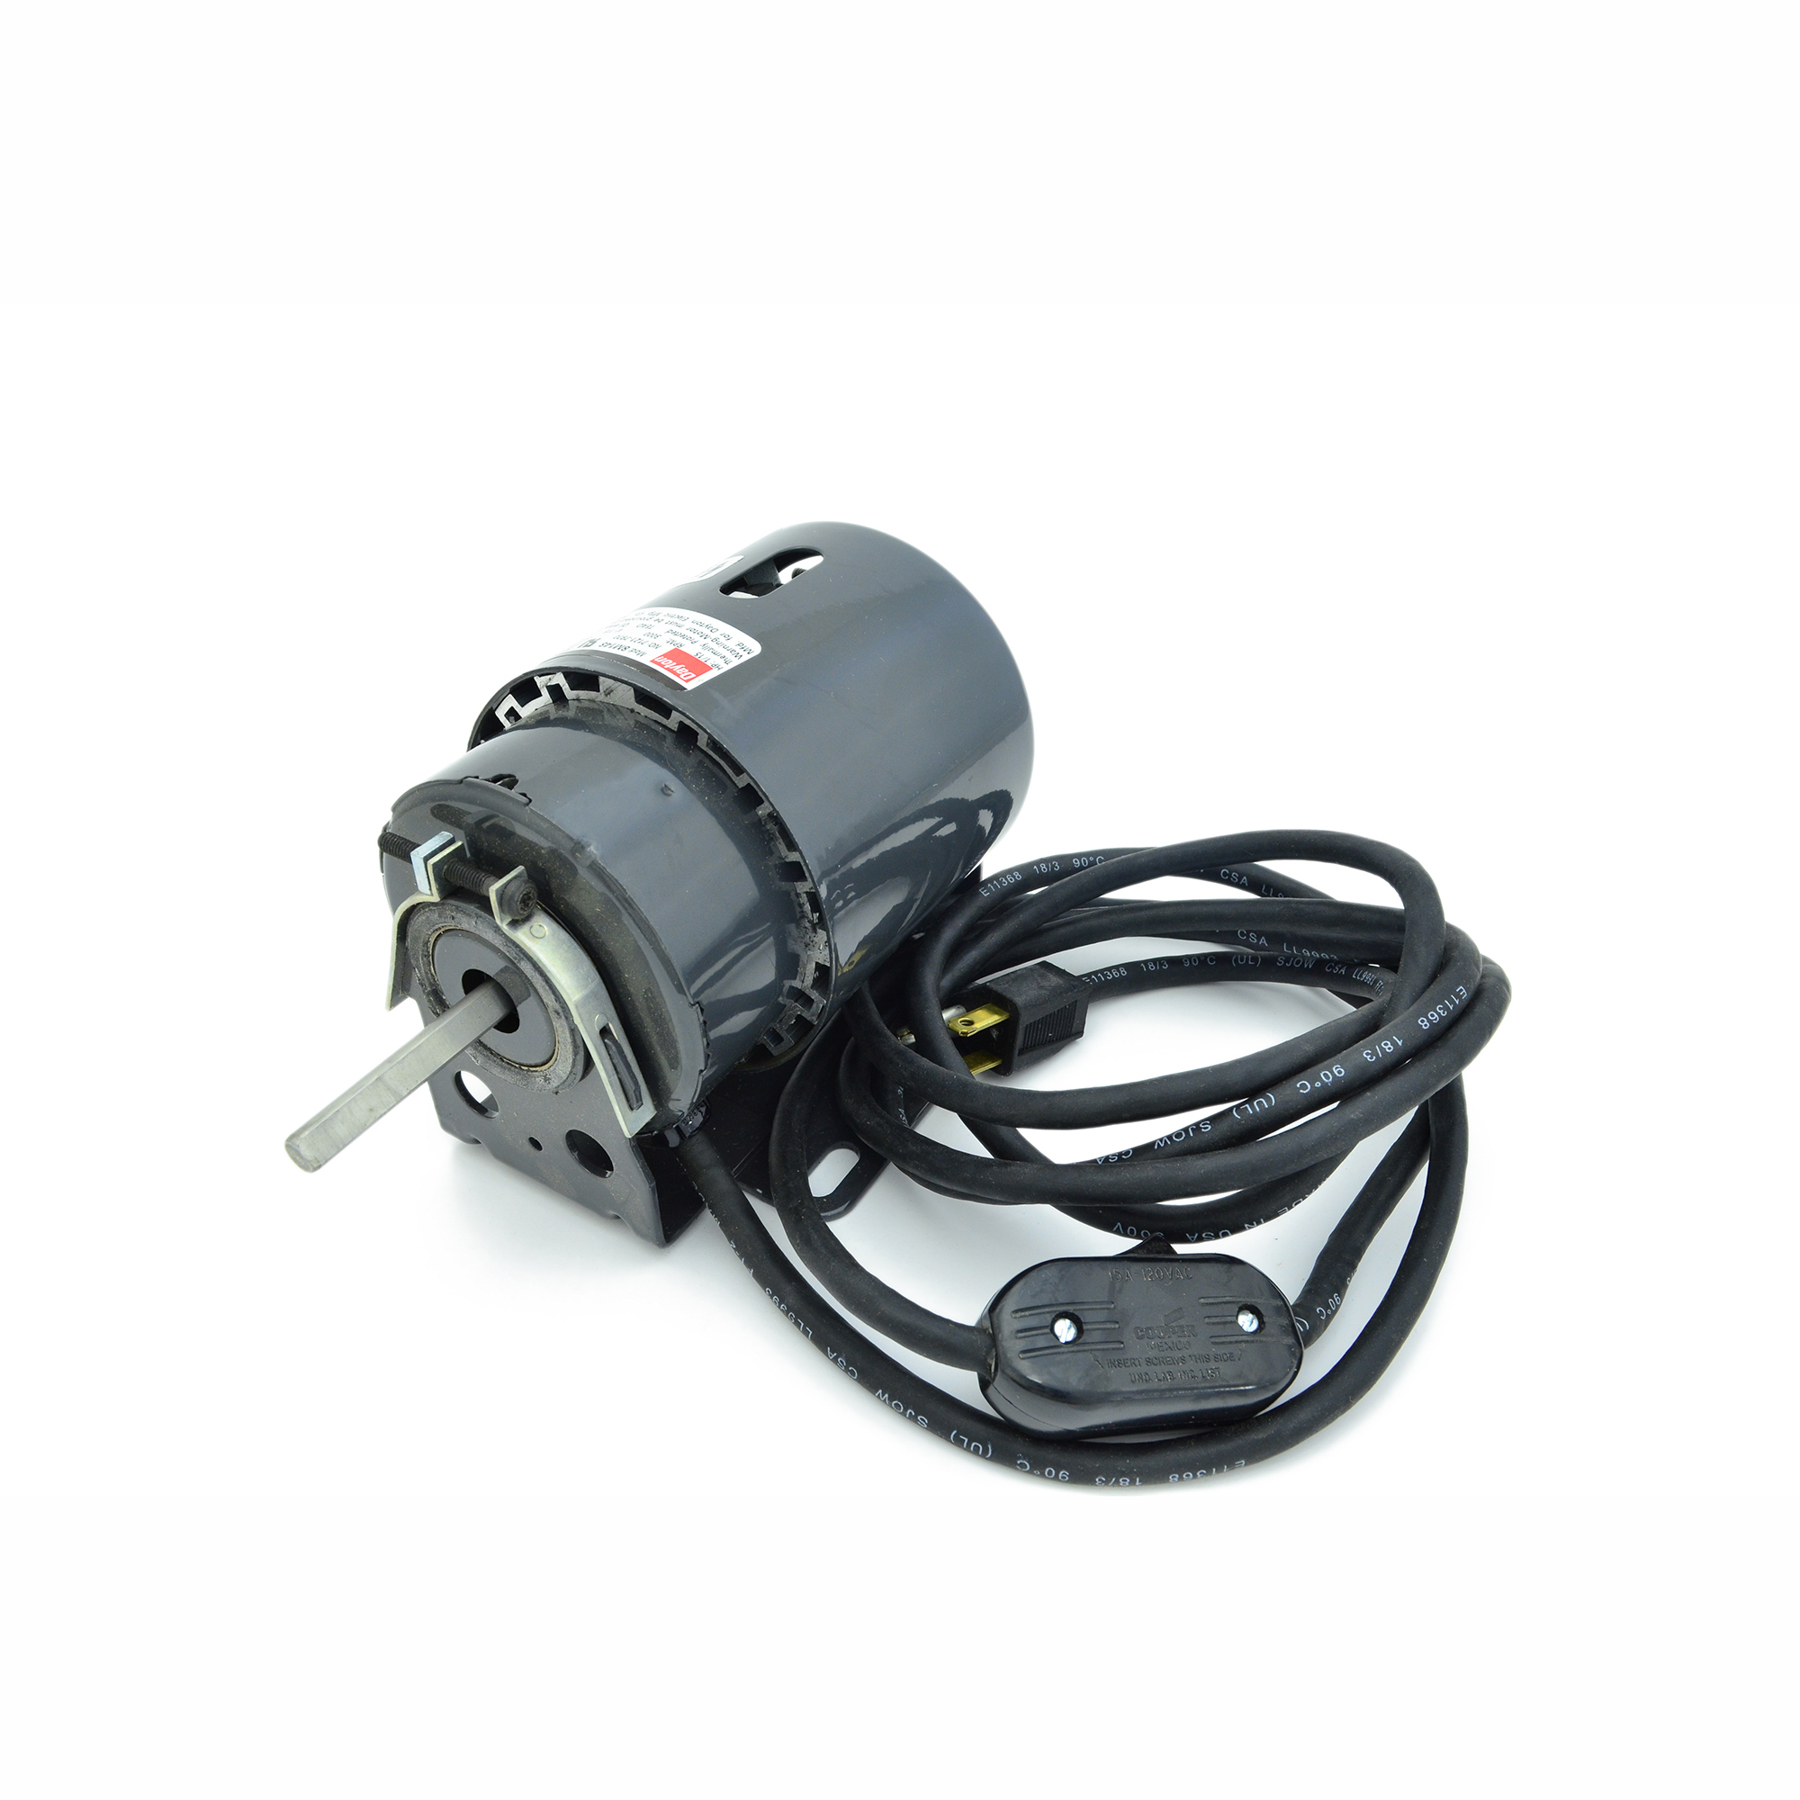 1/4hp Variable Speed L'il Trimmer Electric Lapidary Motor